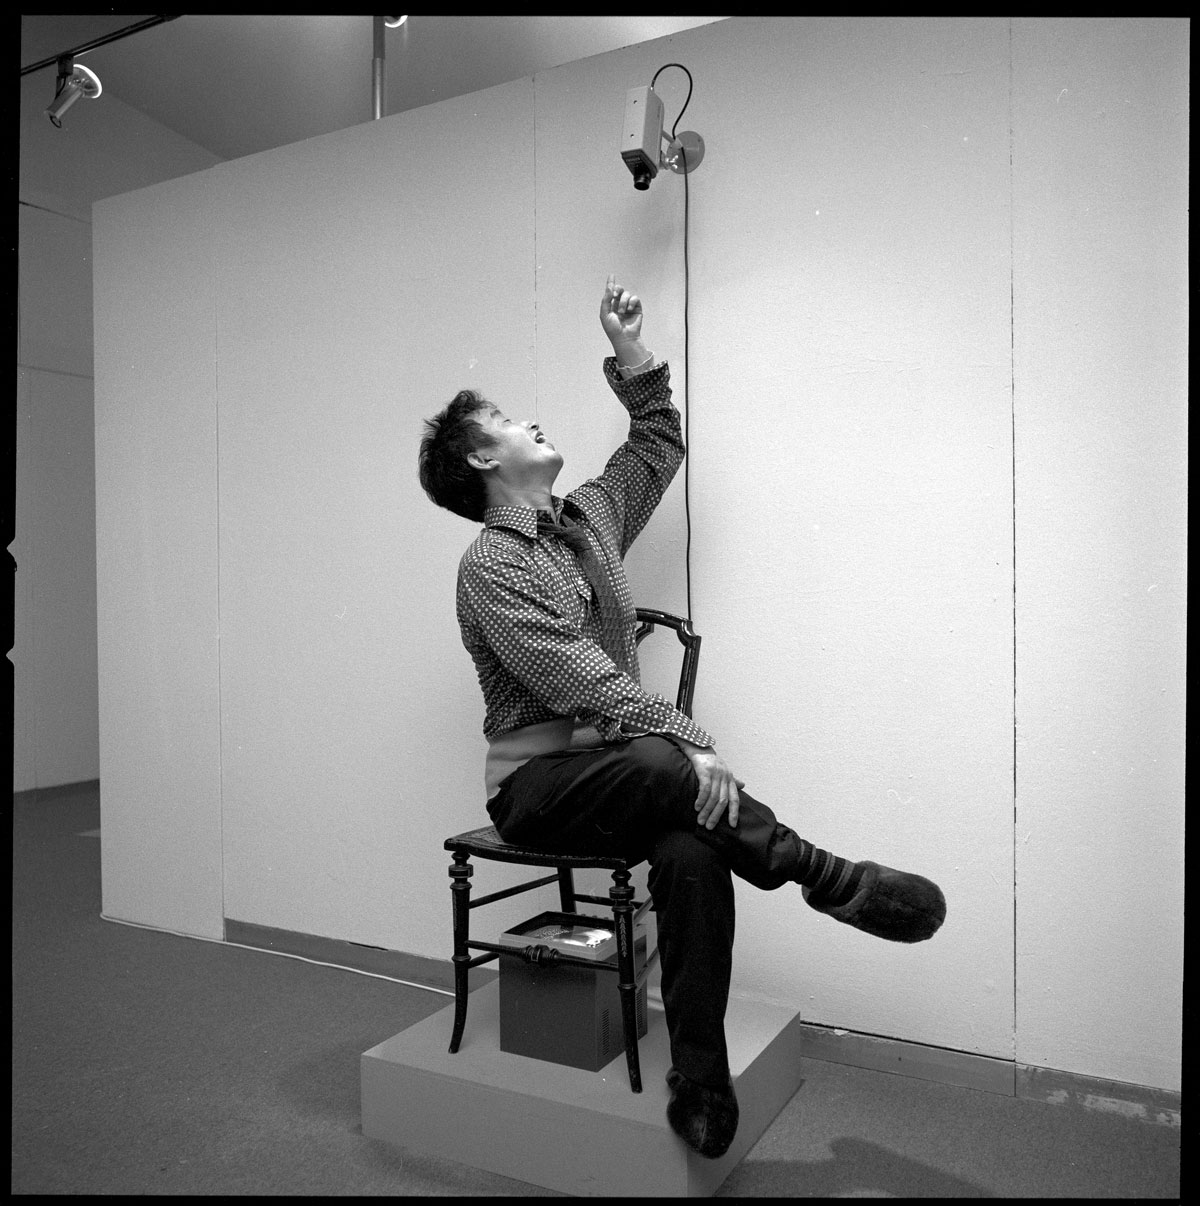 A black-and-white photo of a man sitting on a chair with one leg resting on the opposite knee. He looks up and points at a camera above his head.